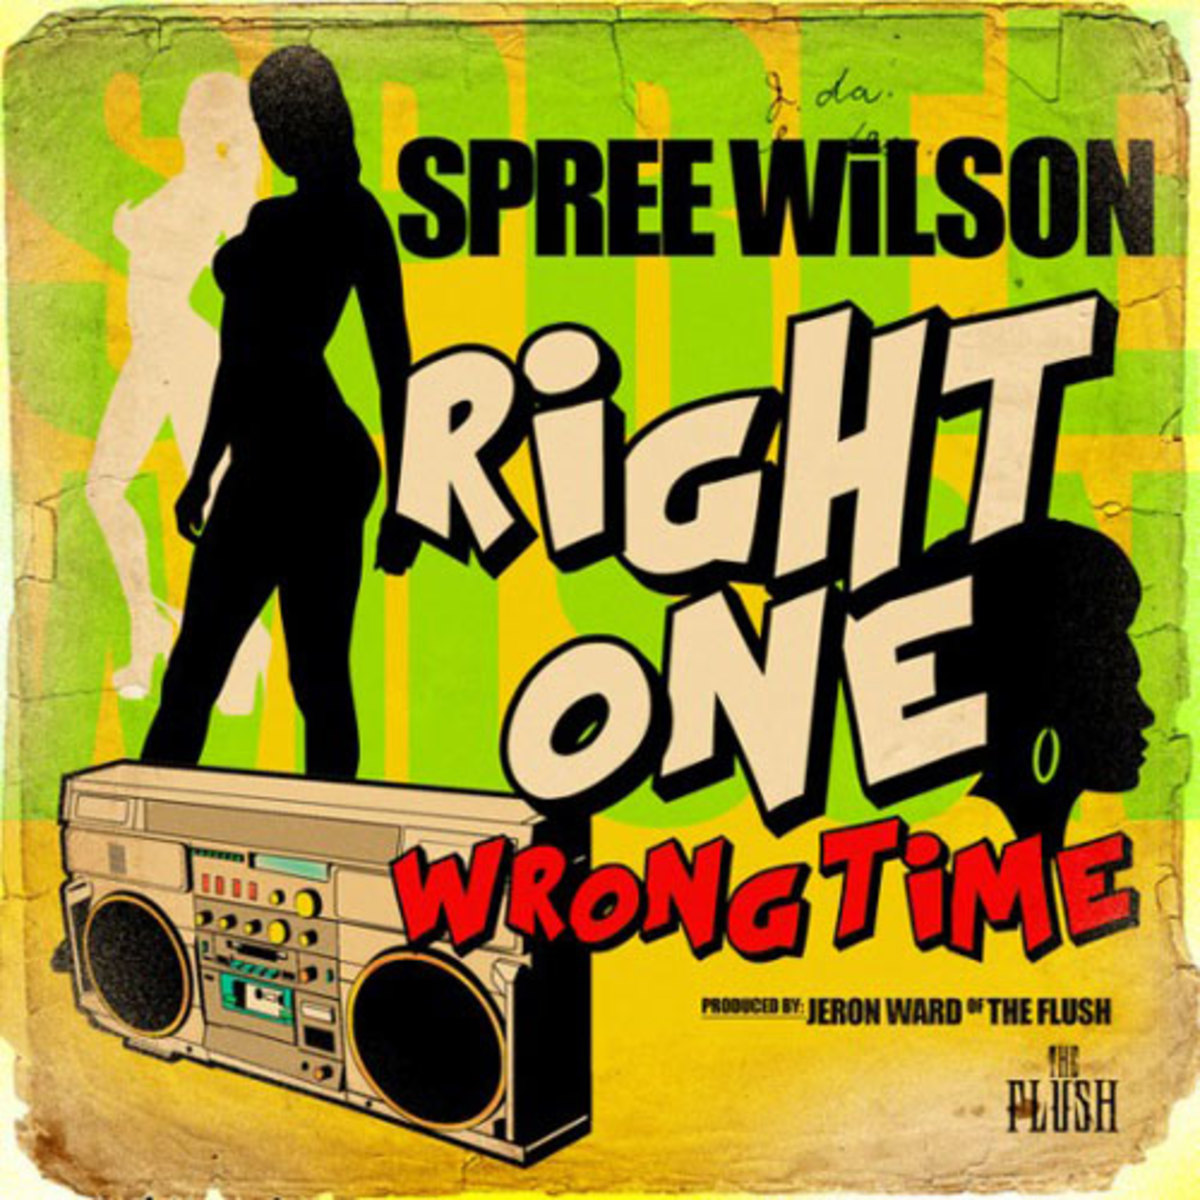 spreewilson-rightonewrongtime.jpg